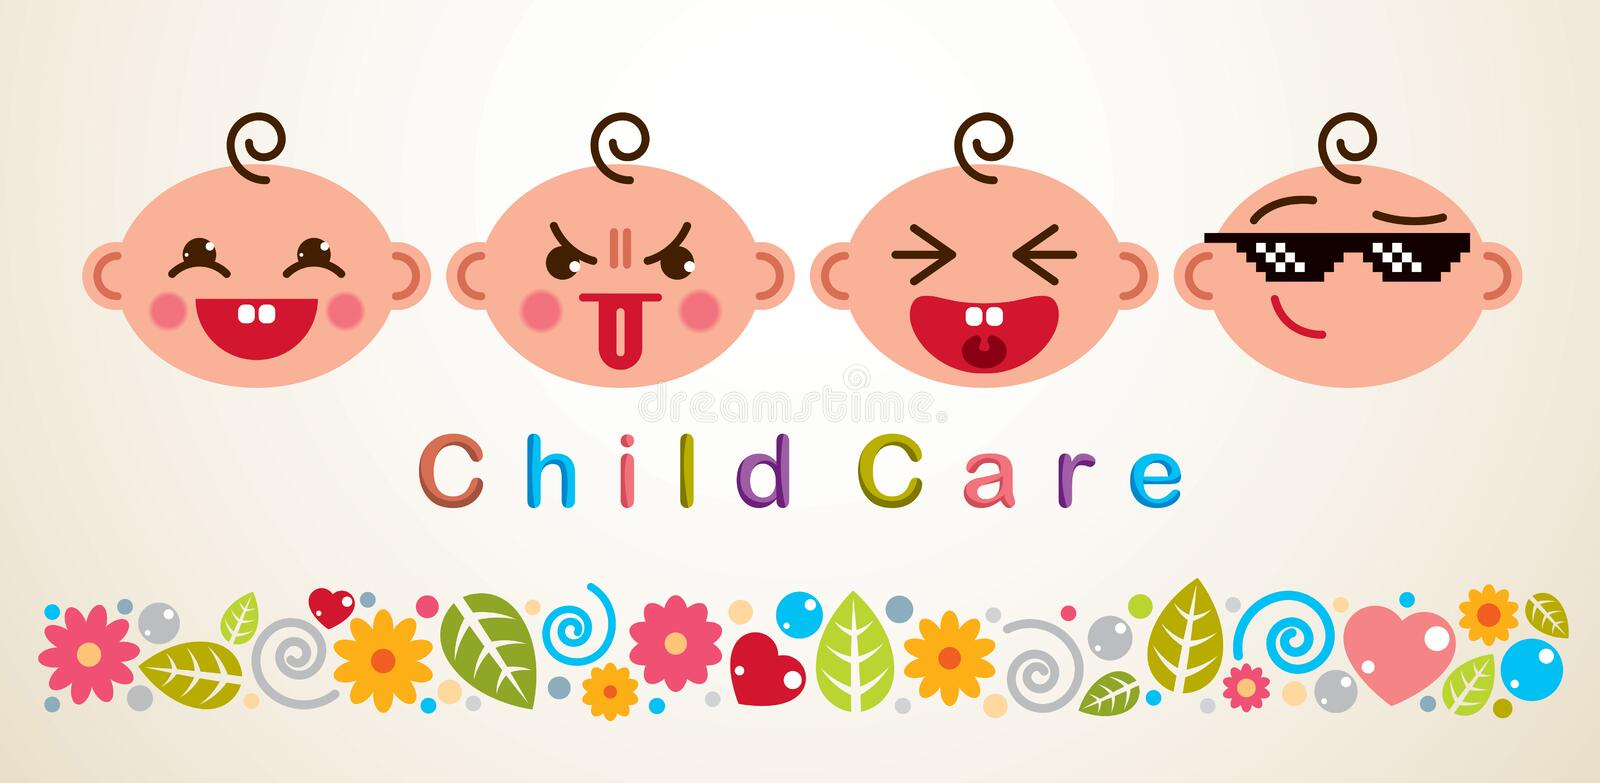 Childcare vector illustration with babies showing different emotions, vector flat style design. vector illustration